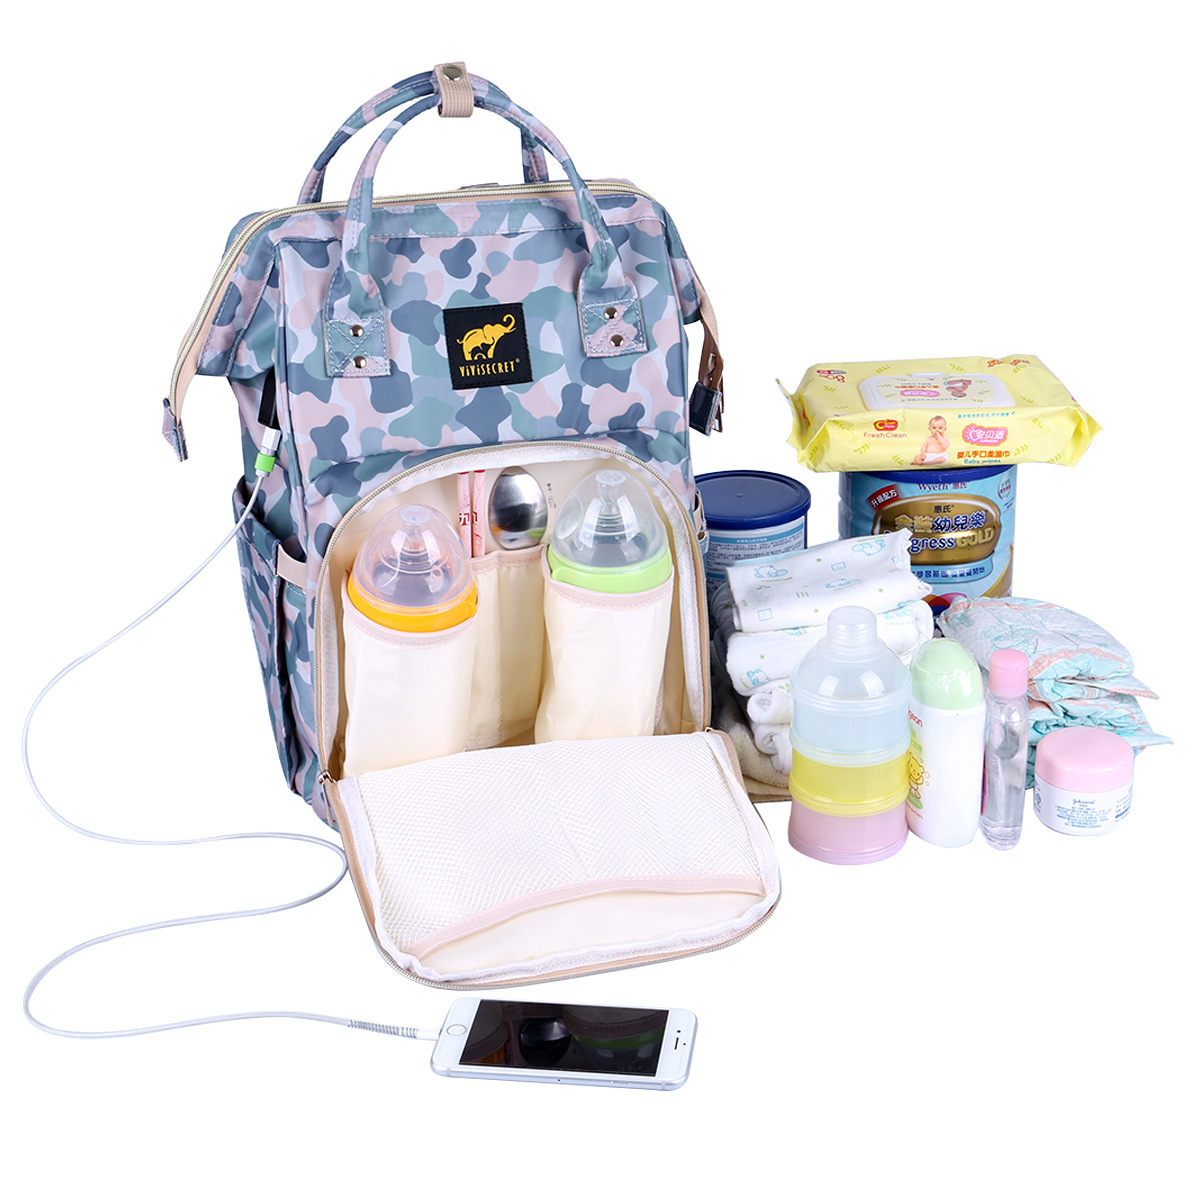 Camouflage Upgraded Mommy Baby Diaper Bag with USB Charged Shoulder Backpack Recreational Maternity Child Bag To The HospitalCamouflage Upgraded Mommy Baby Diaper Bag with USB Charged Shoulder Backpack Recreational Maternity Child Bag To The Hospital